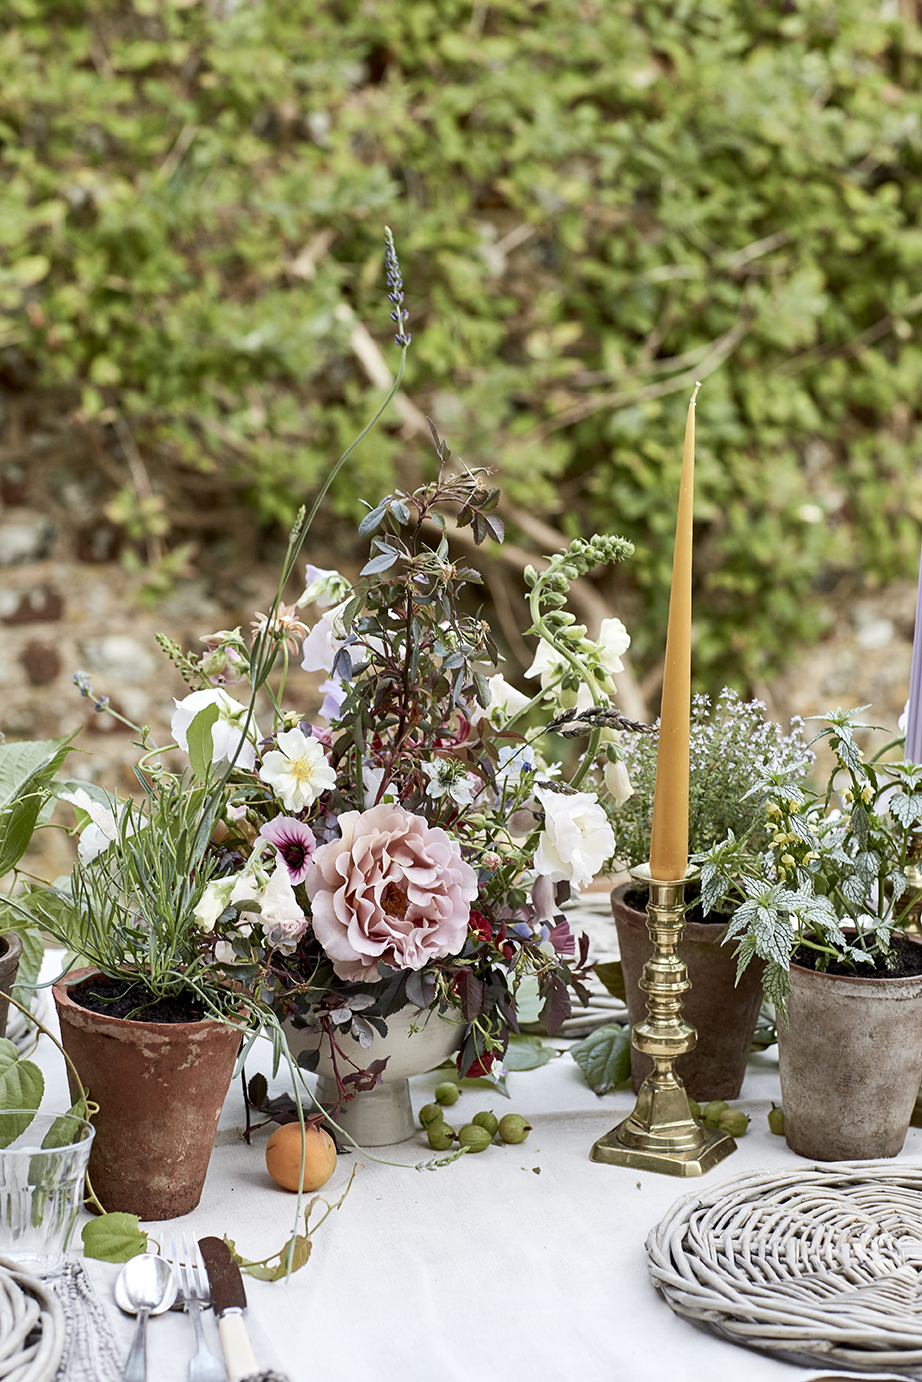 A garden-y tablescape of potted plants, arrangements, candles and fruit   Photographed by  Kristin Perers